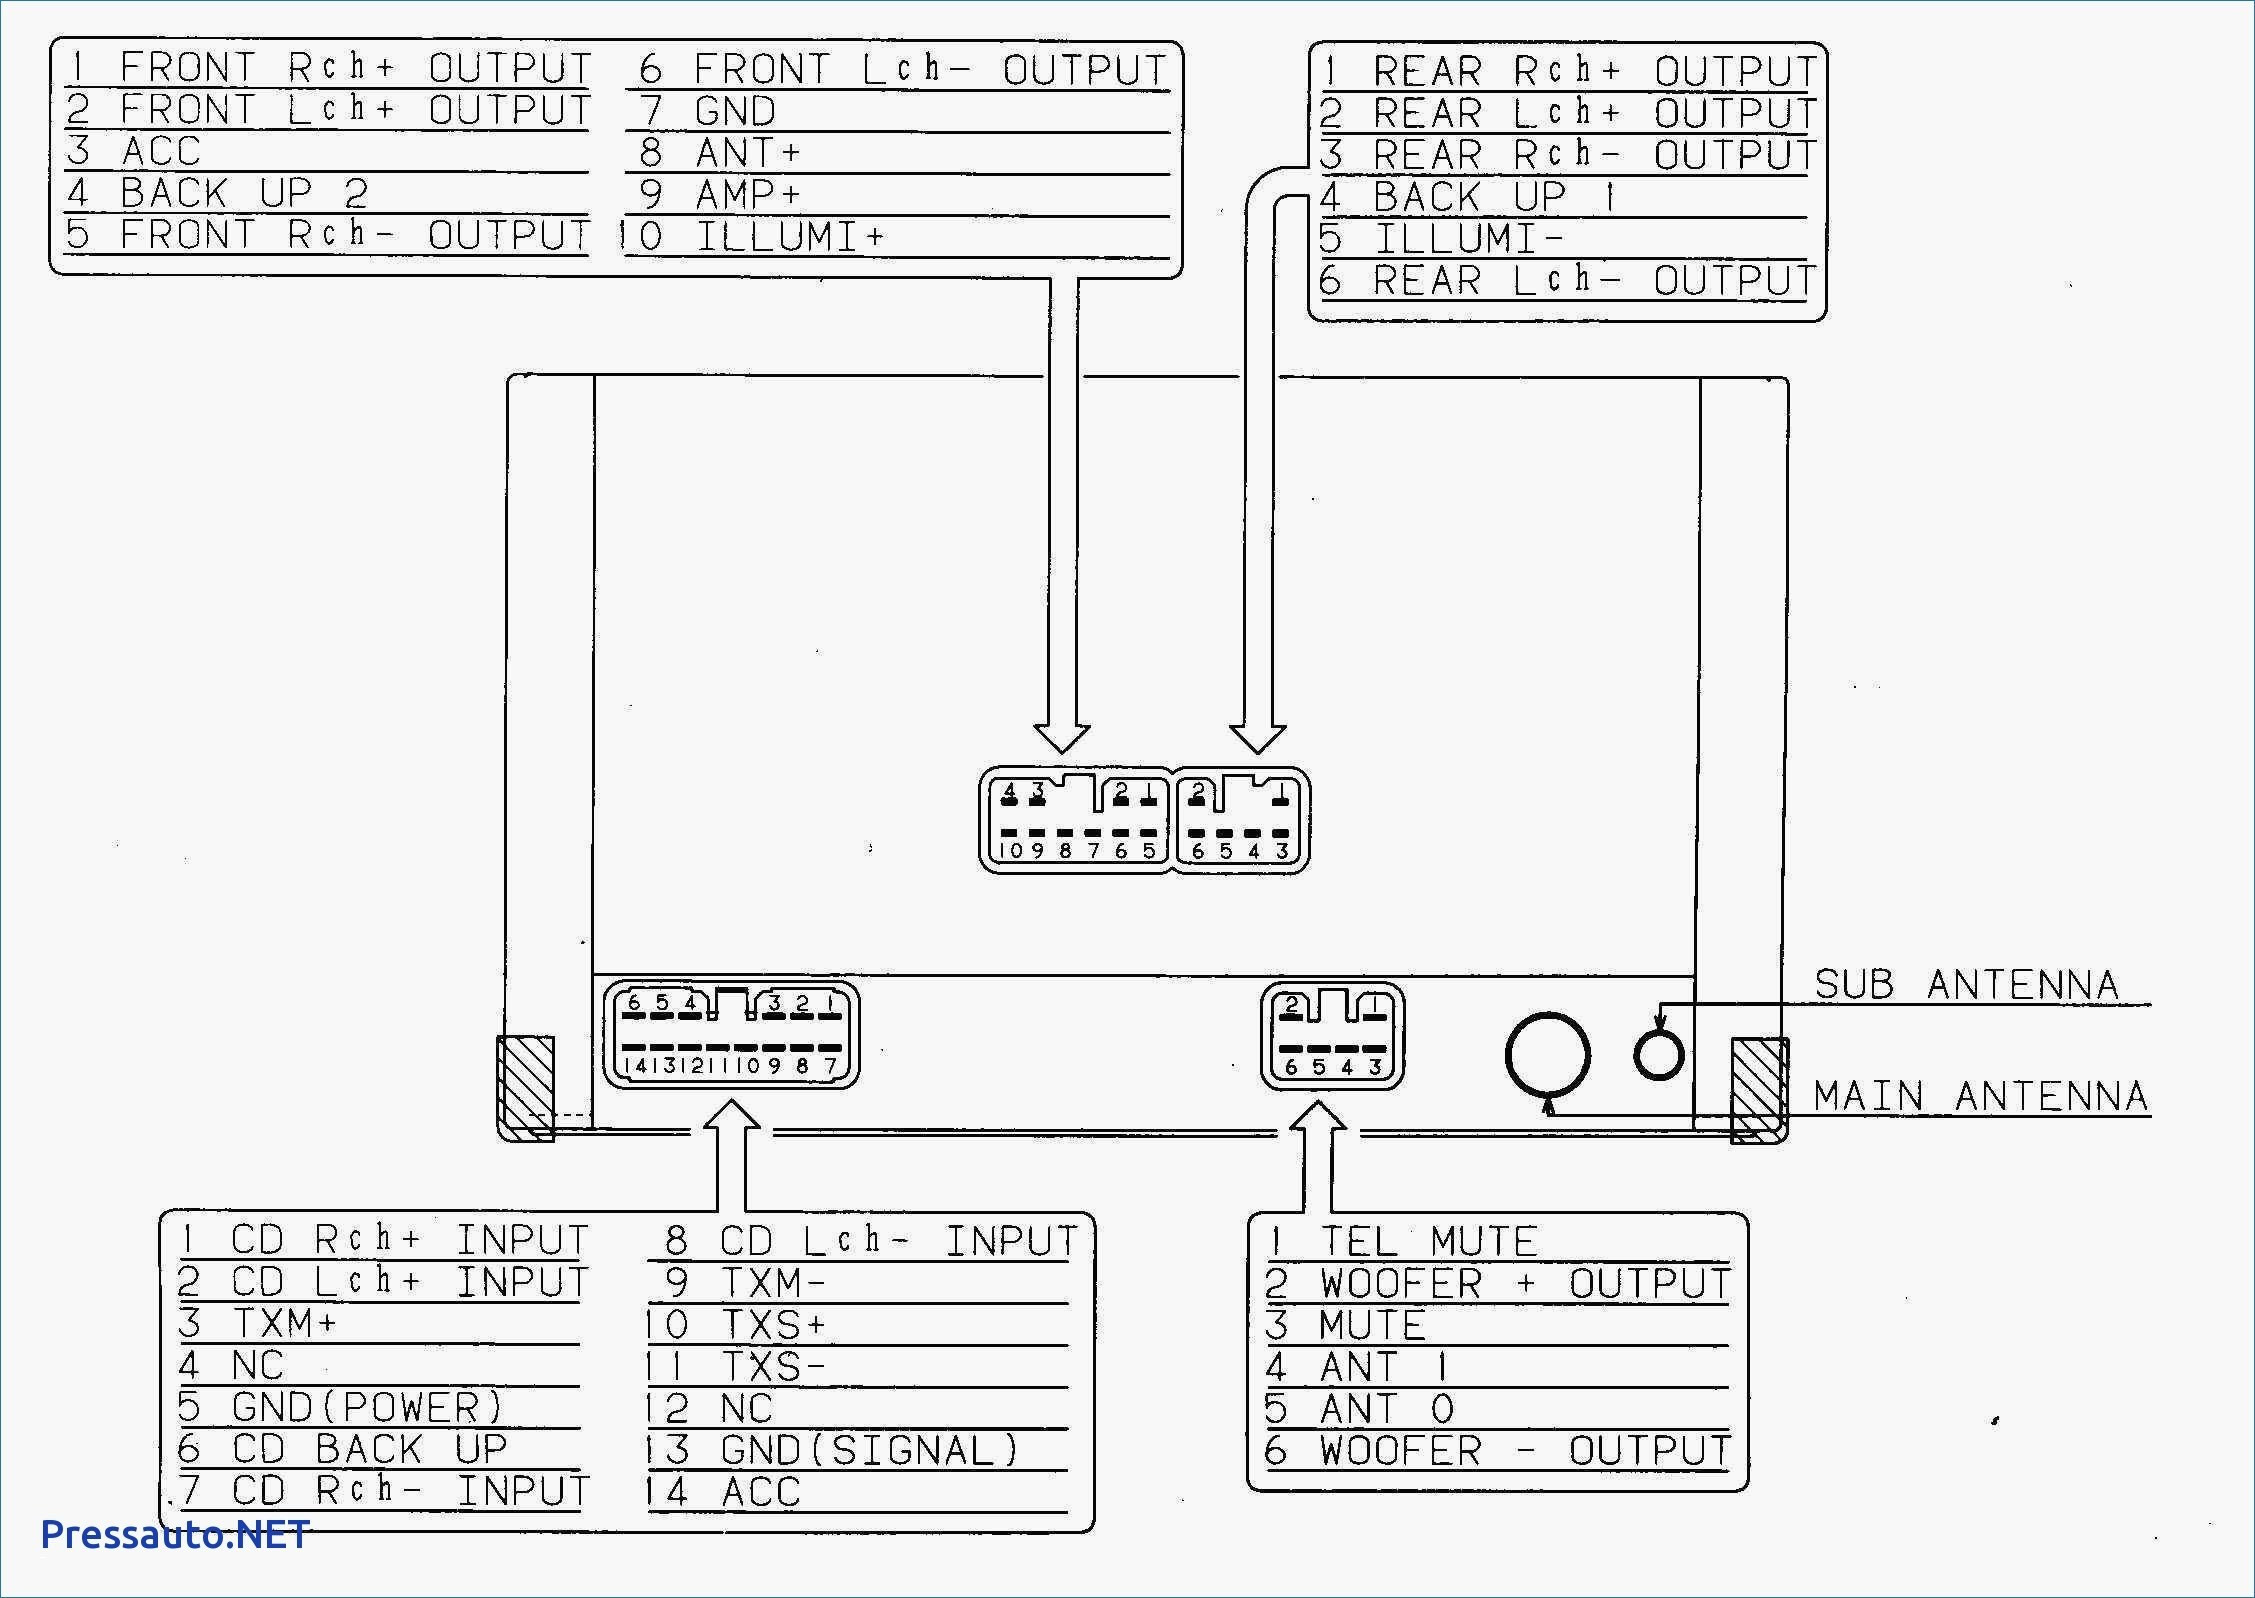 sony xplod car stereo wiring diagram Download-Wiring Diagram For Sony Xplod Car Stereo Valid Car Stereo Wiring Diagram Originalstylophone 12-j